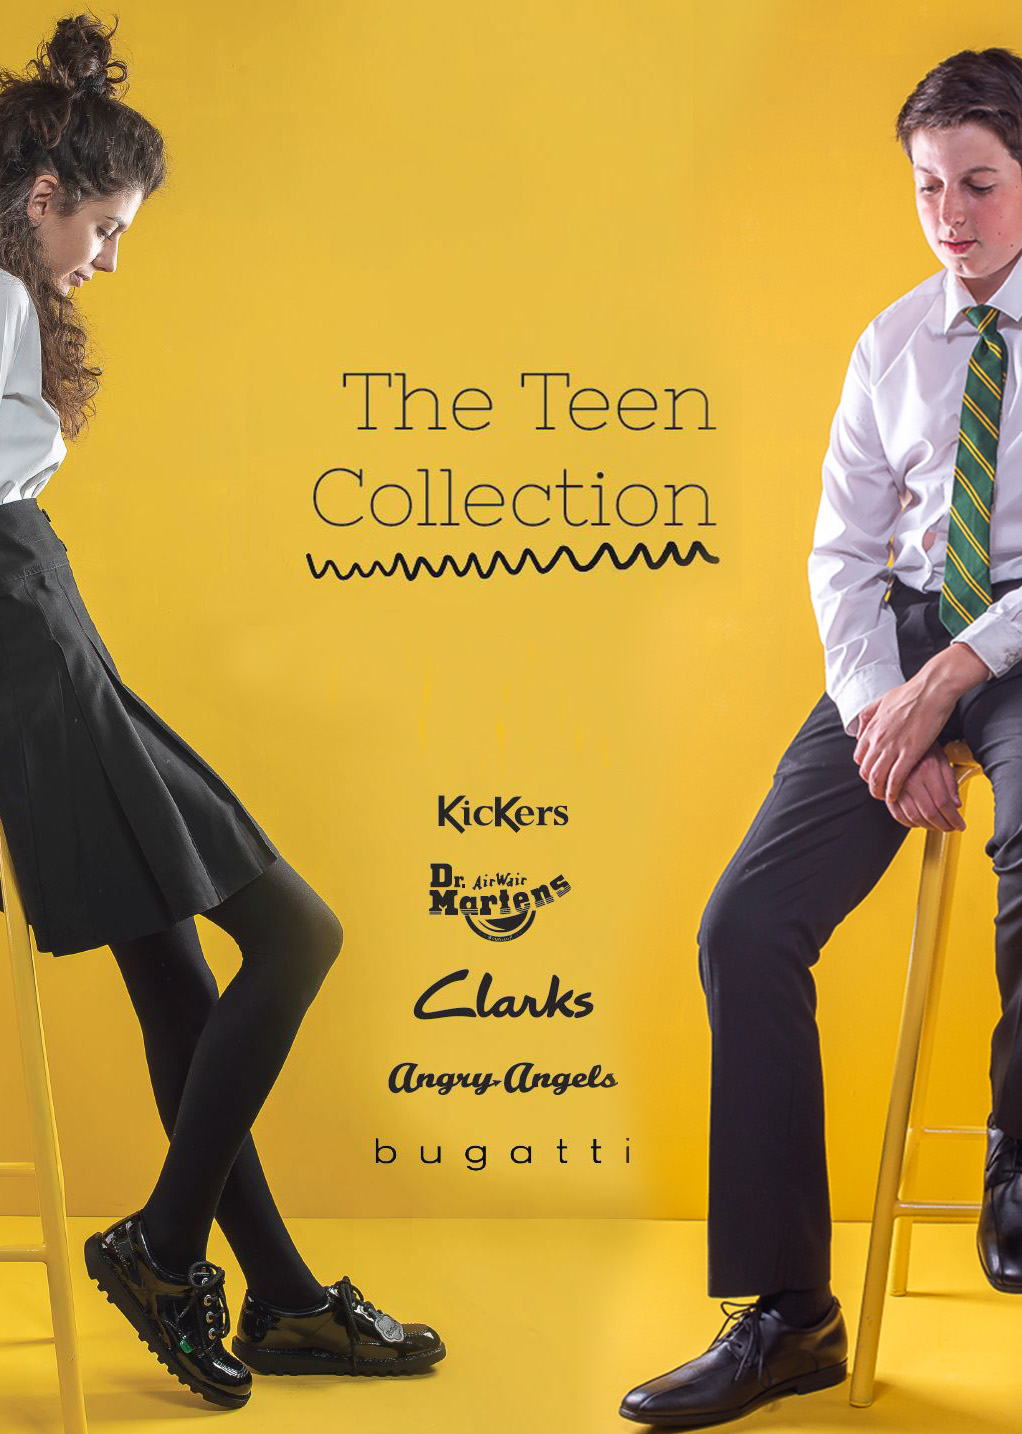 The Teen Collection